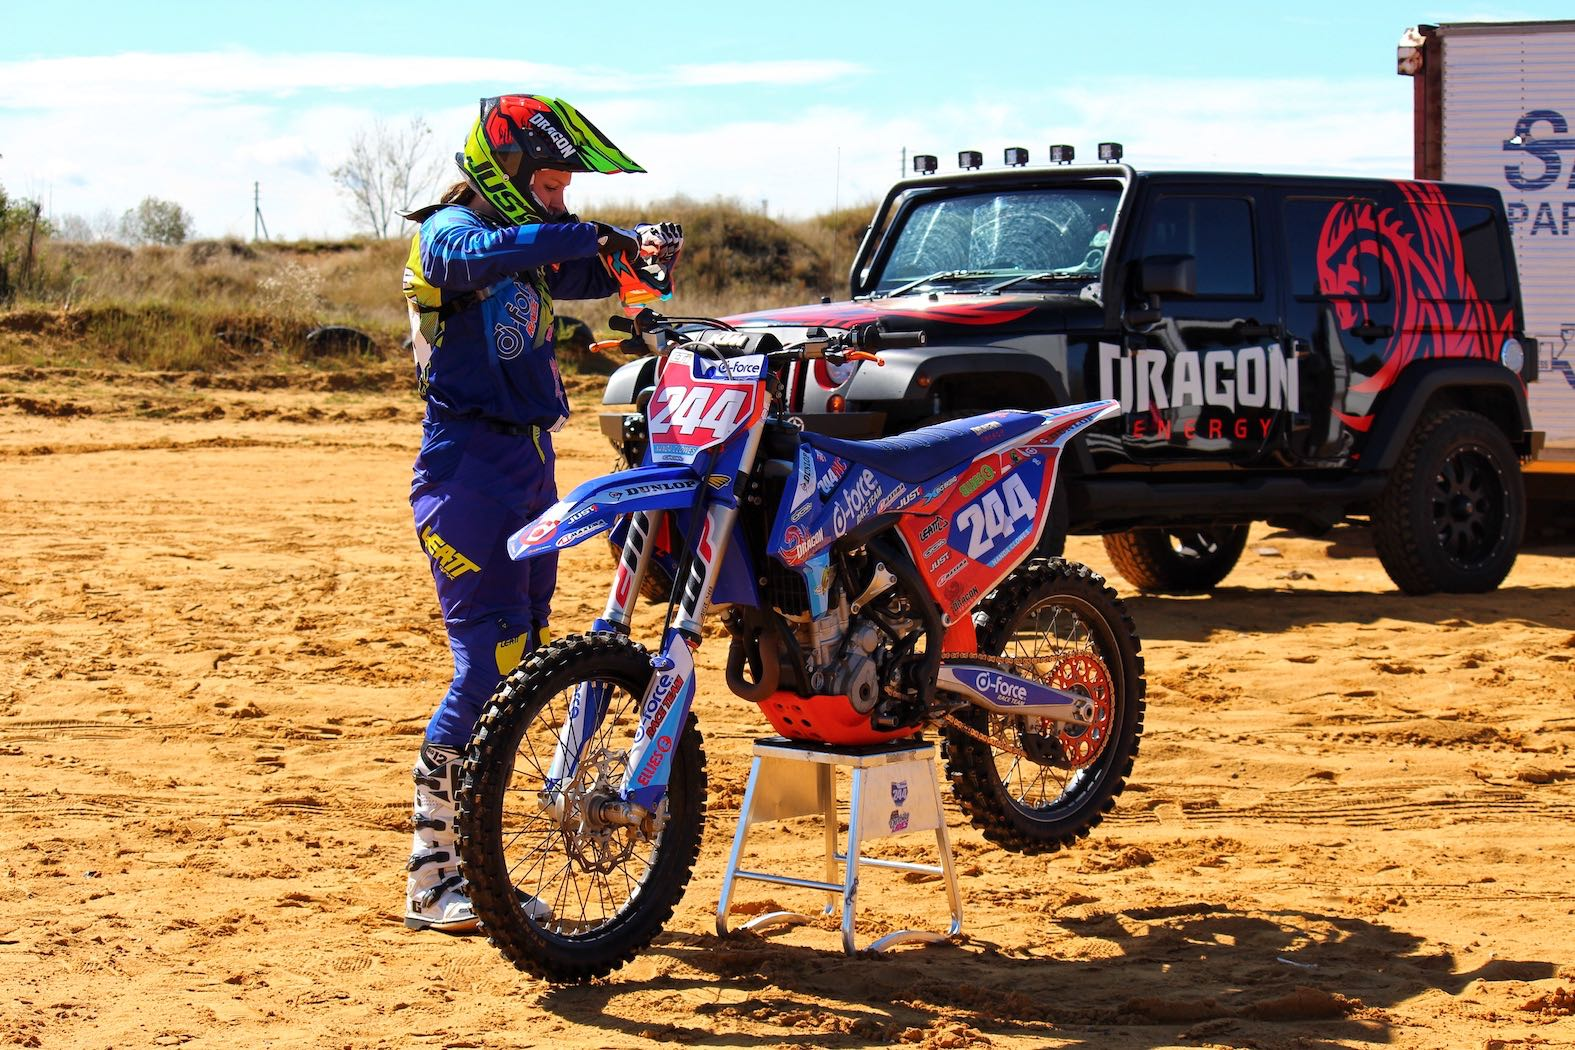 Nanda Clowes talks motocross for our #SandDreams feature